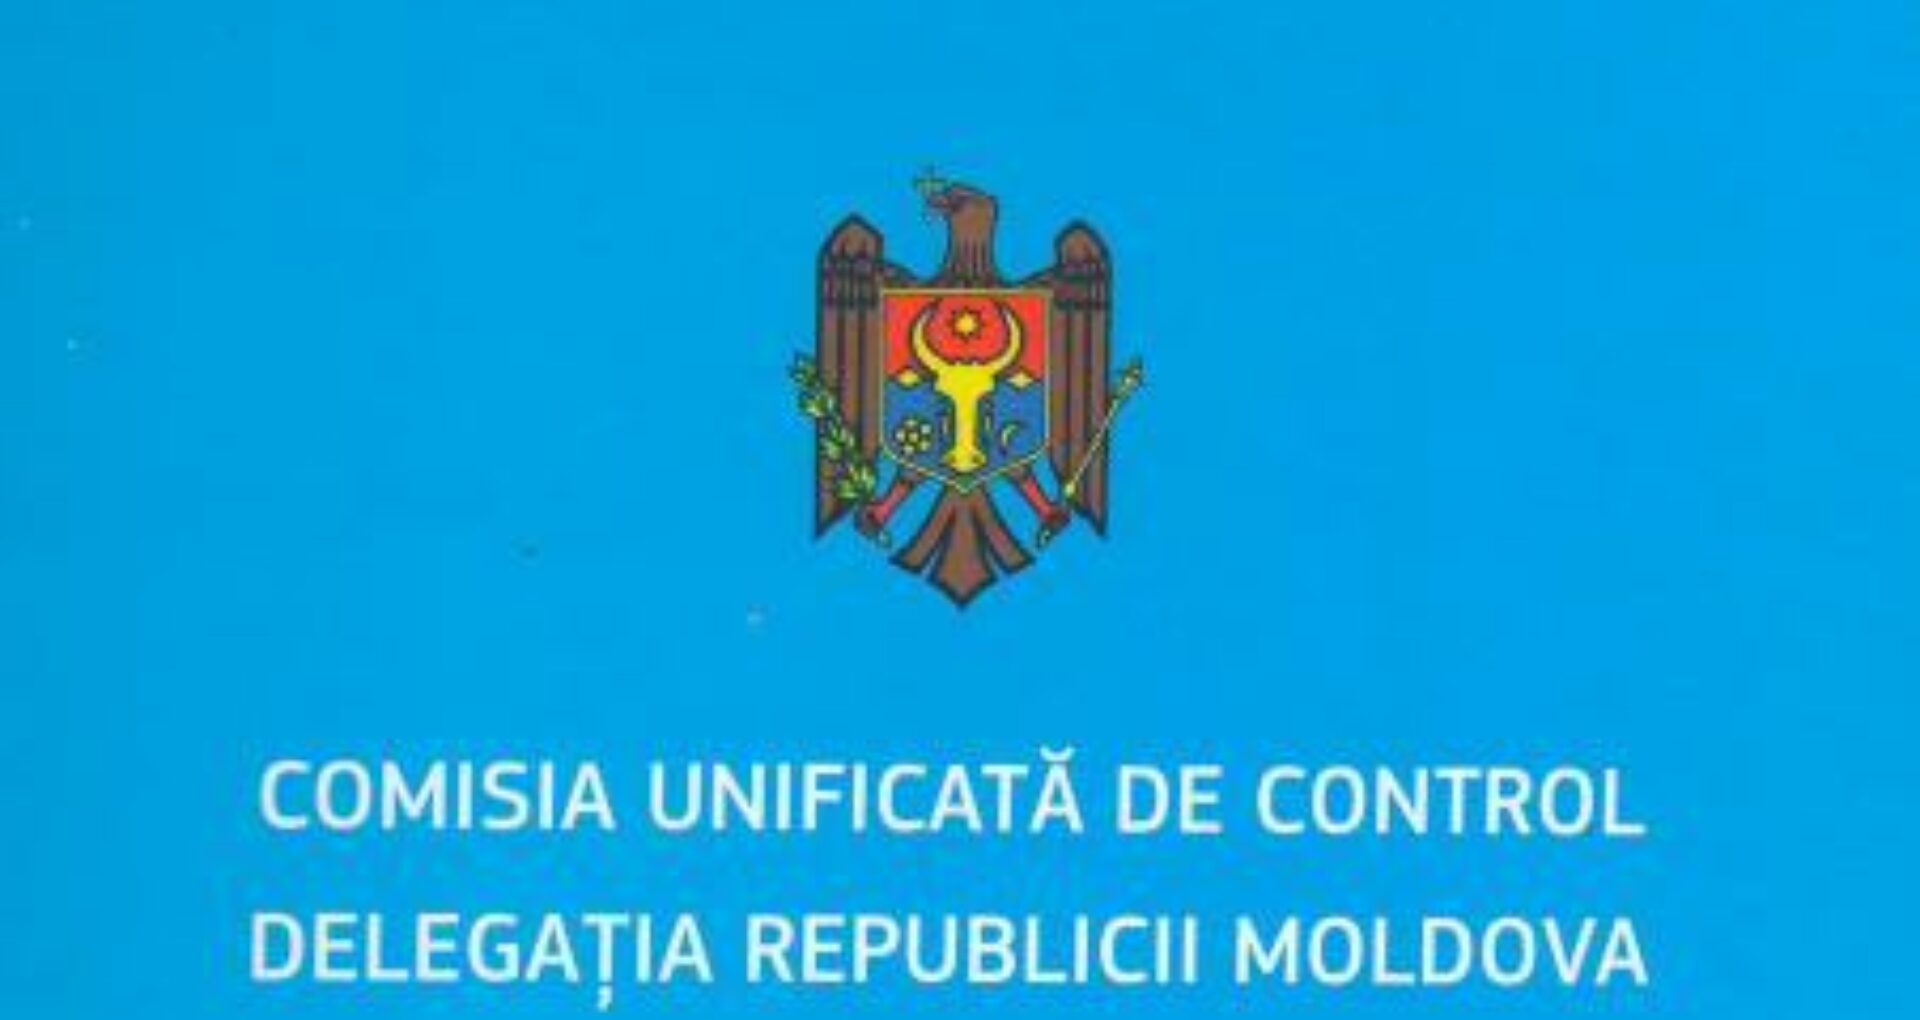 Transnistrian Delegation Rejects Compromise Proposal For Security Zone Border Posts